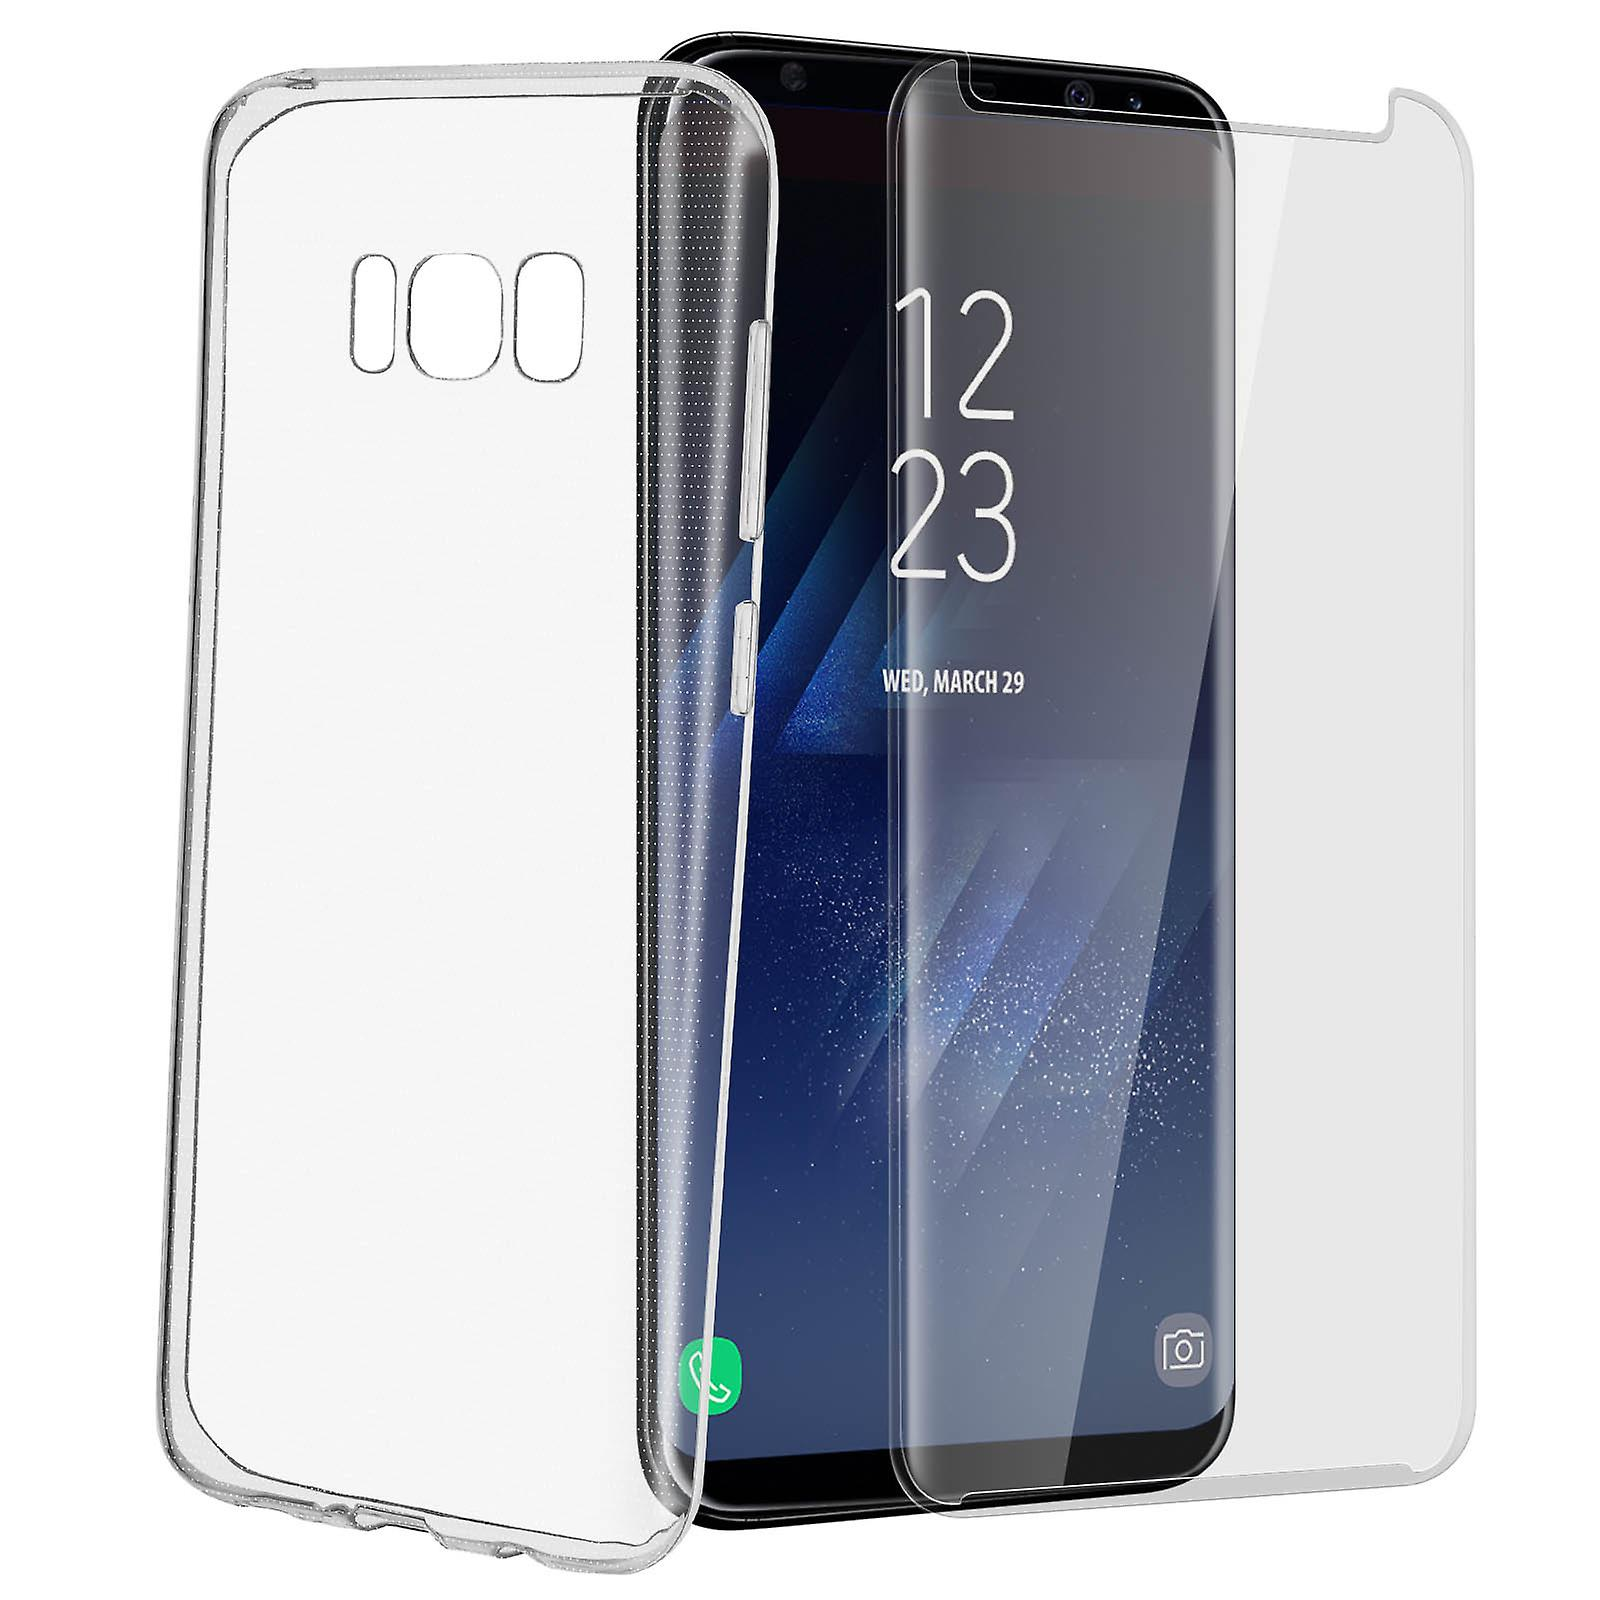 pretty nice 89aa2 ffd78 Back case + Screen Protector Tempered Glass Clear Samsung Galaxy S8 Plus